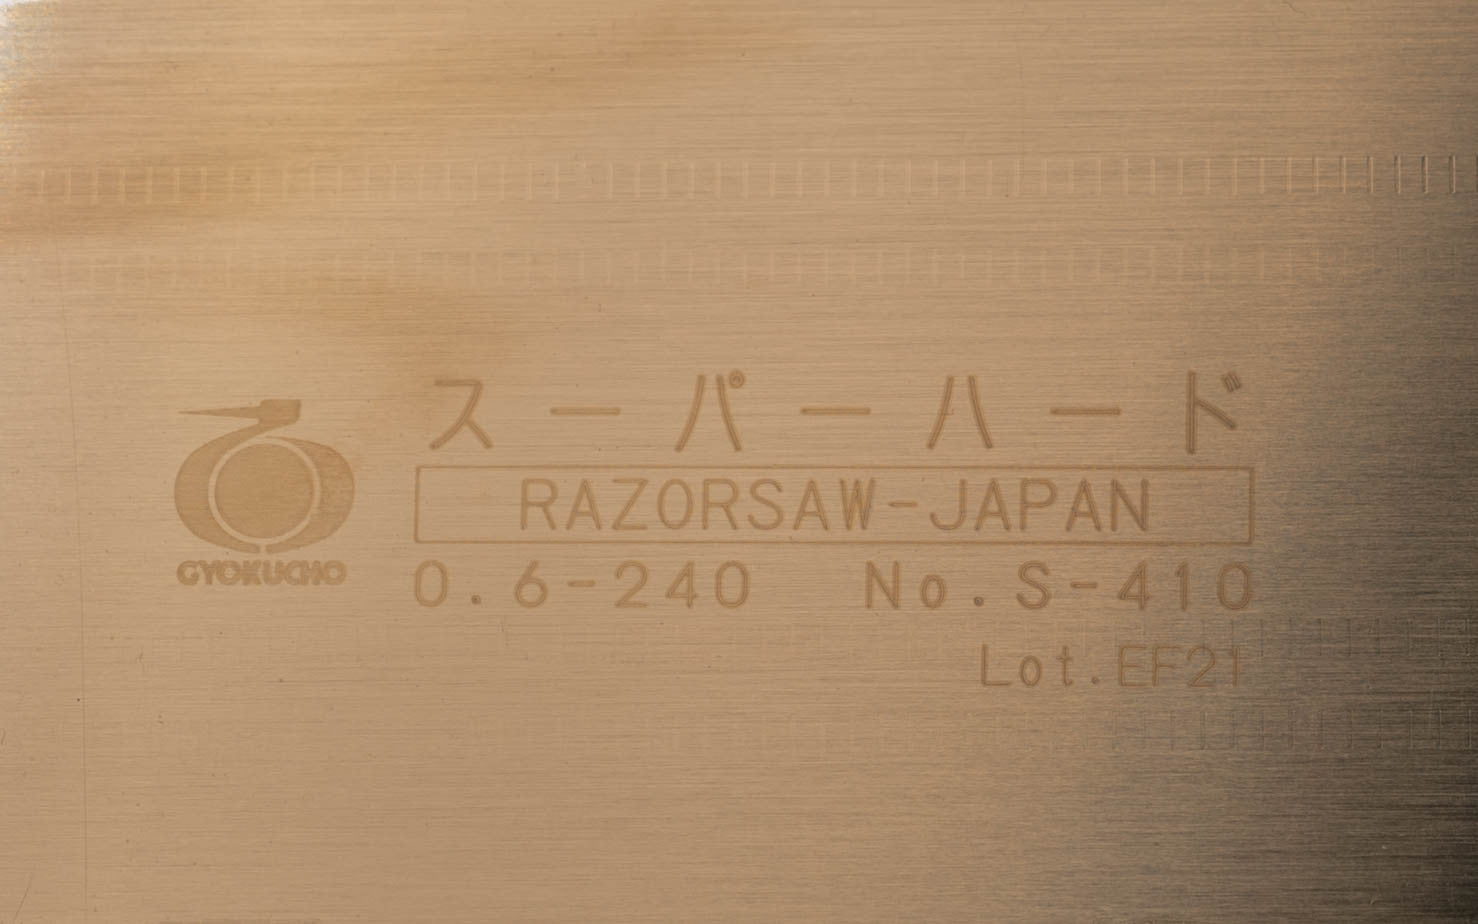 Replacement Blade for Japanese Gyokucho Razorsaw 240 mm